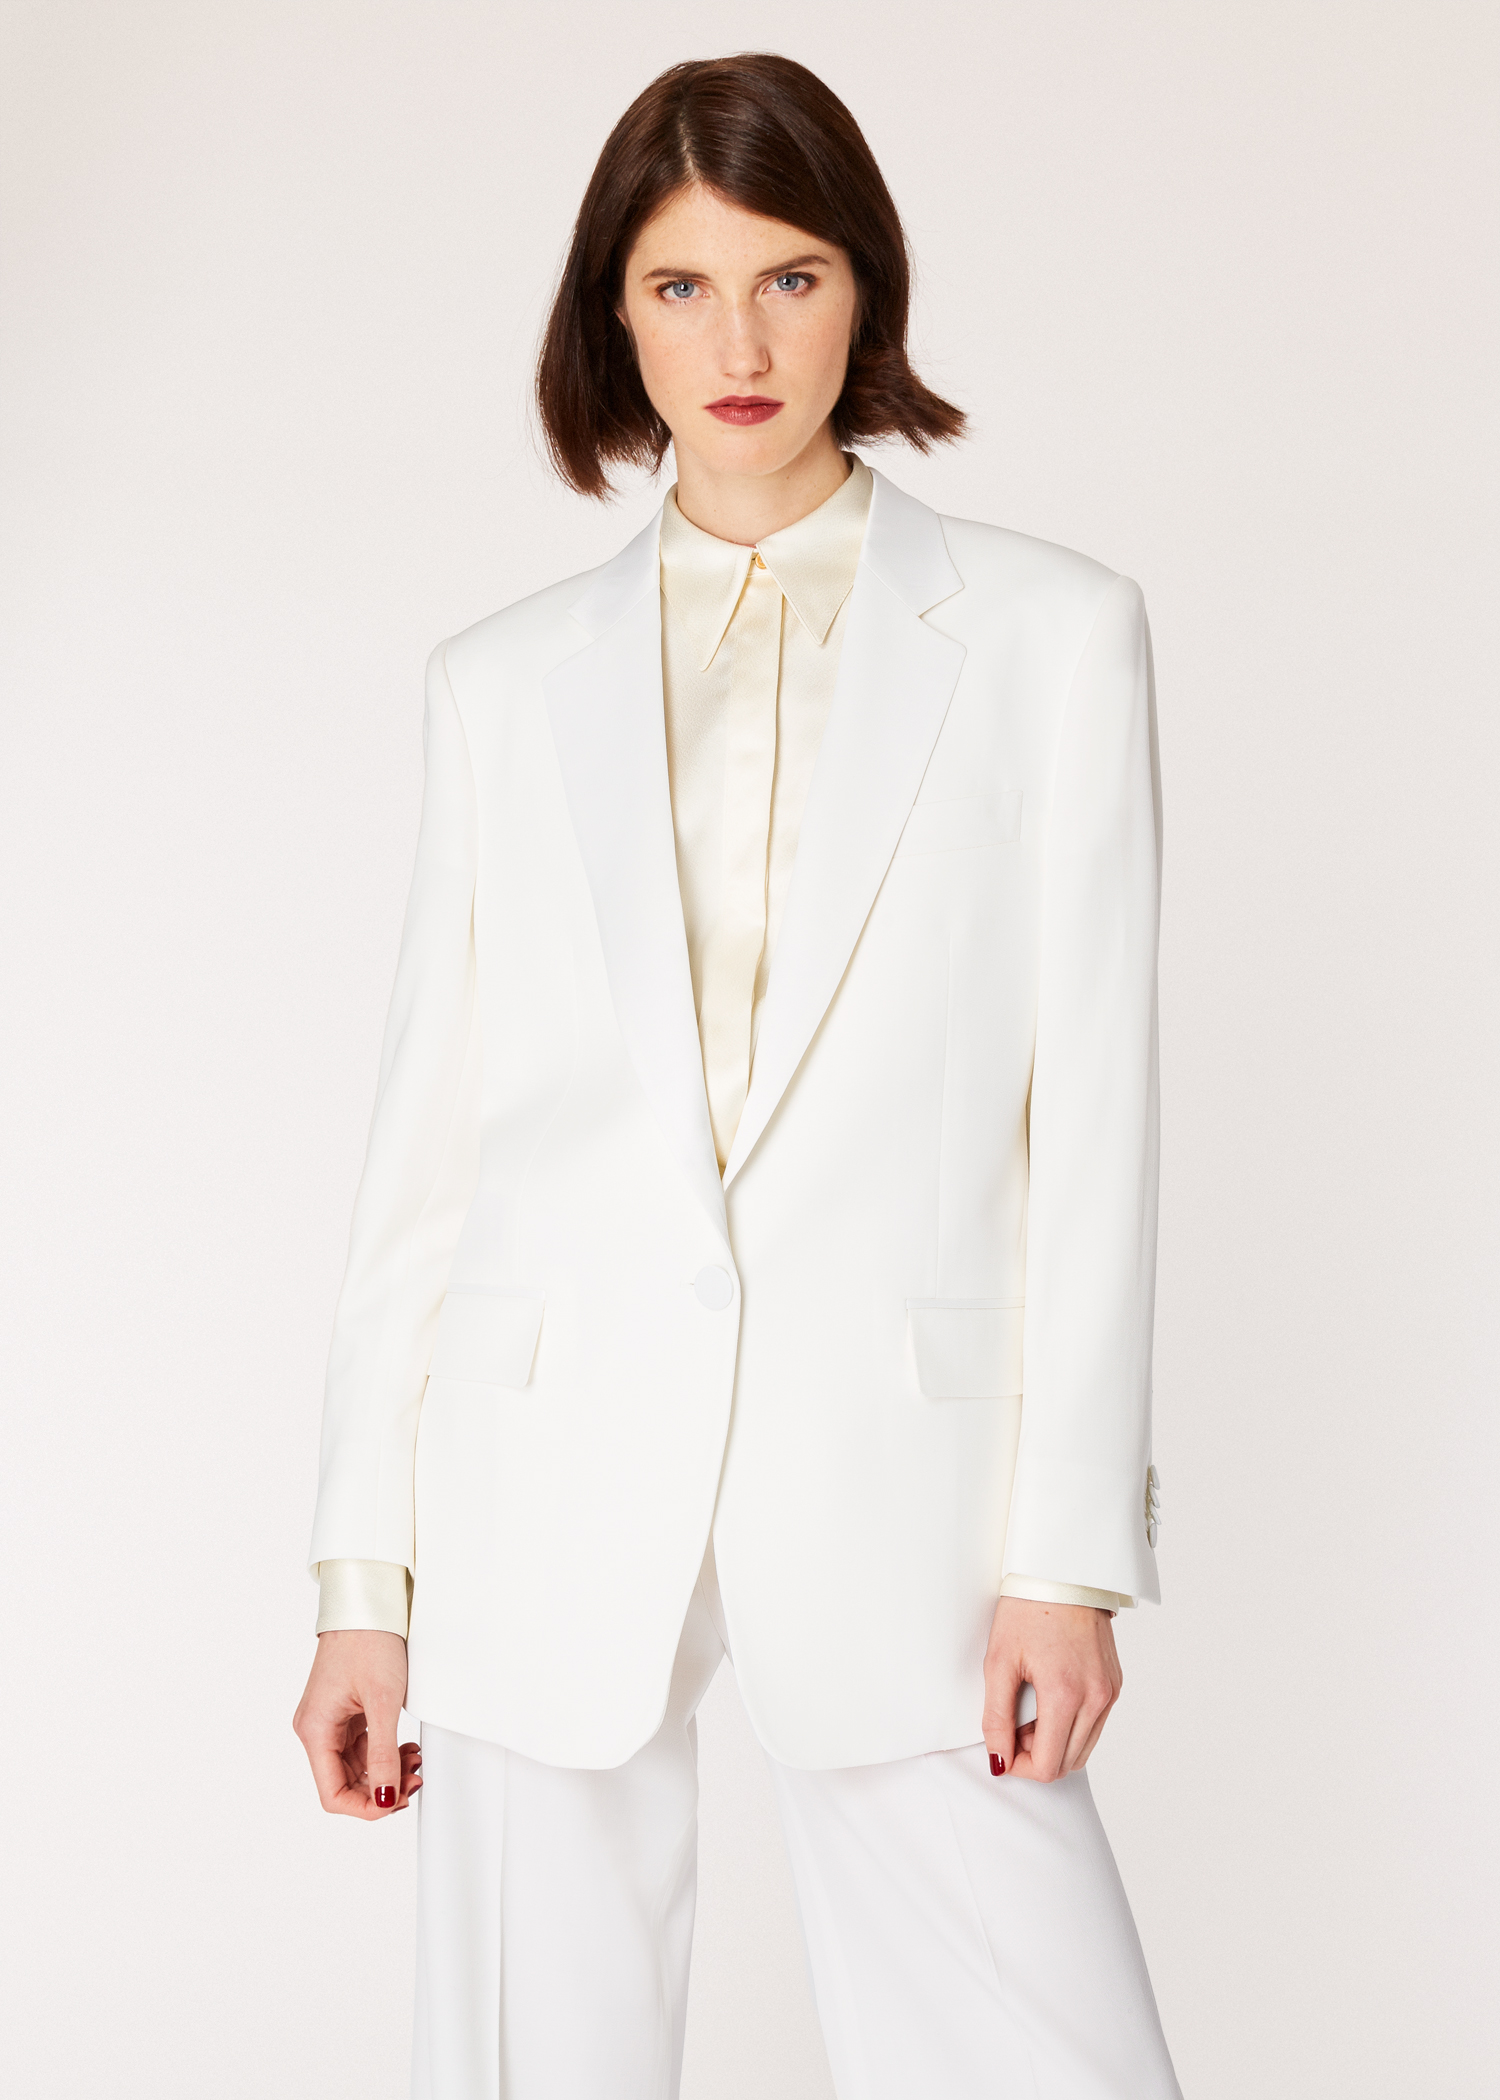 eb6aa9551a42 Model front close up - Women's Ivory One-Button Wool Boyfriend-Fit Tuxedo  Blazer